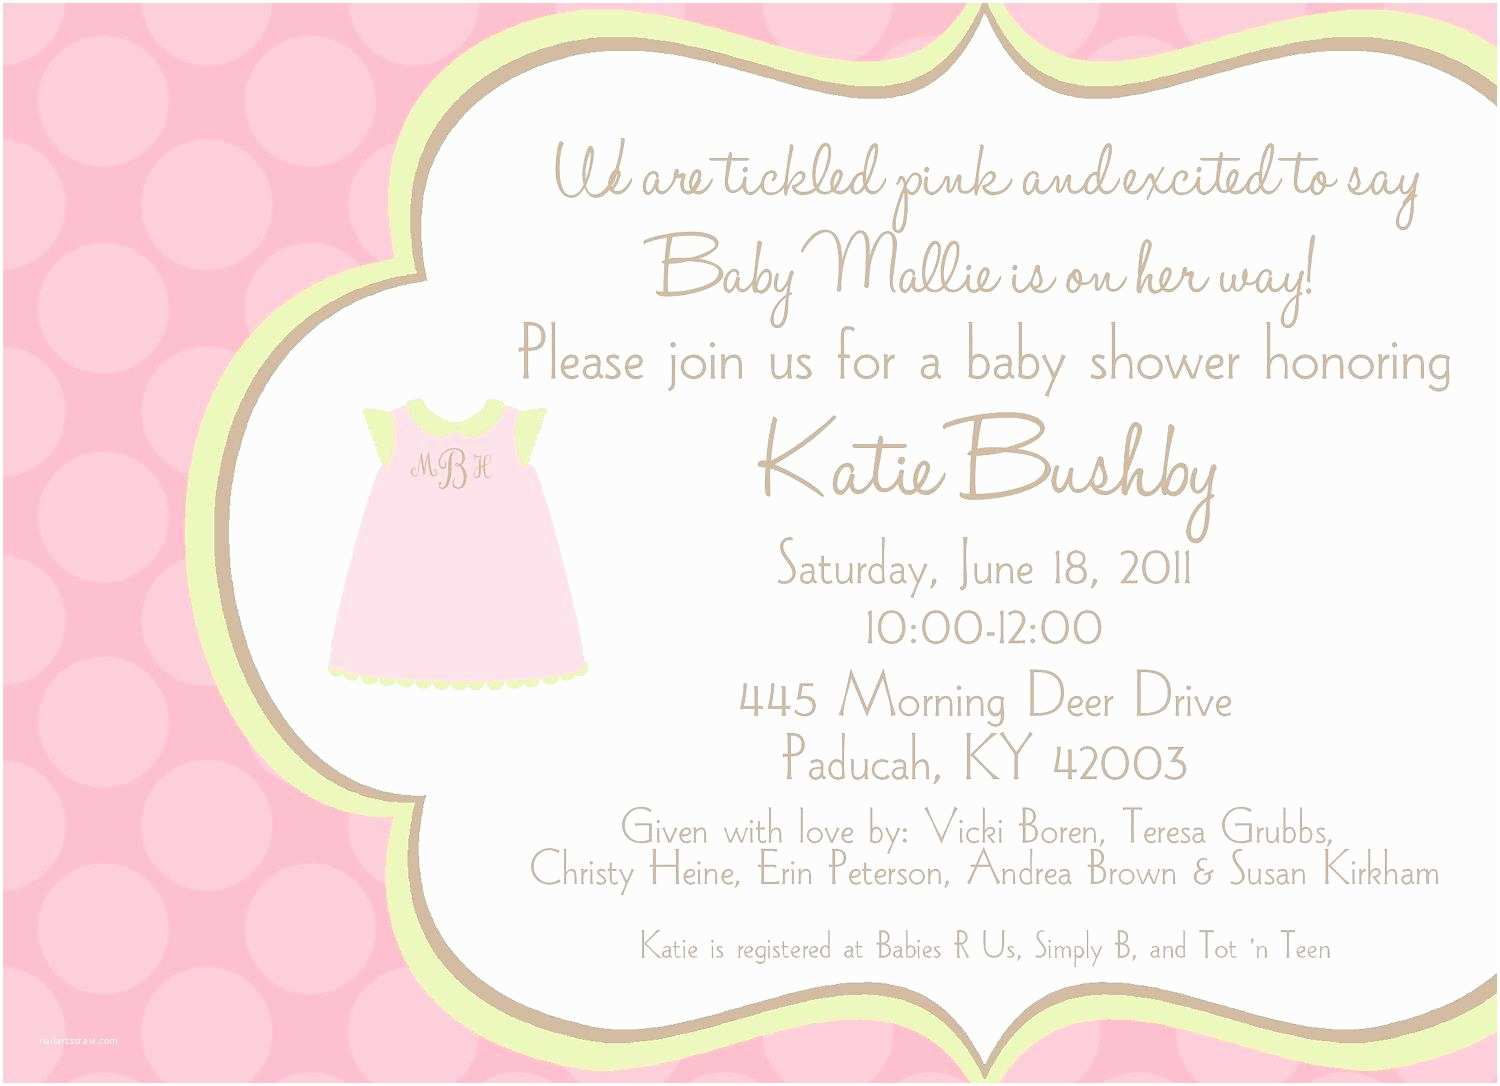 Cute Baby Shower Invitations Cute Baby Shower Sayings for Invitations